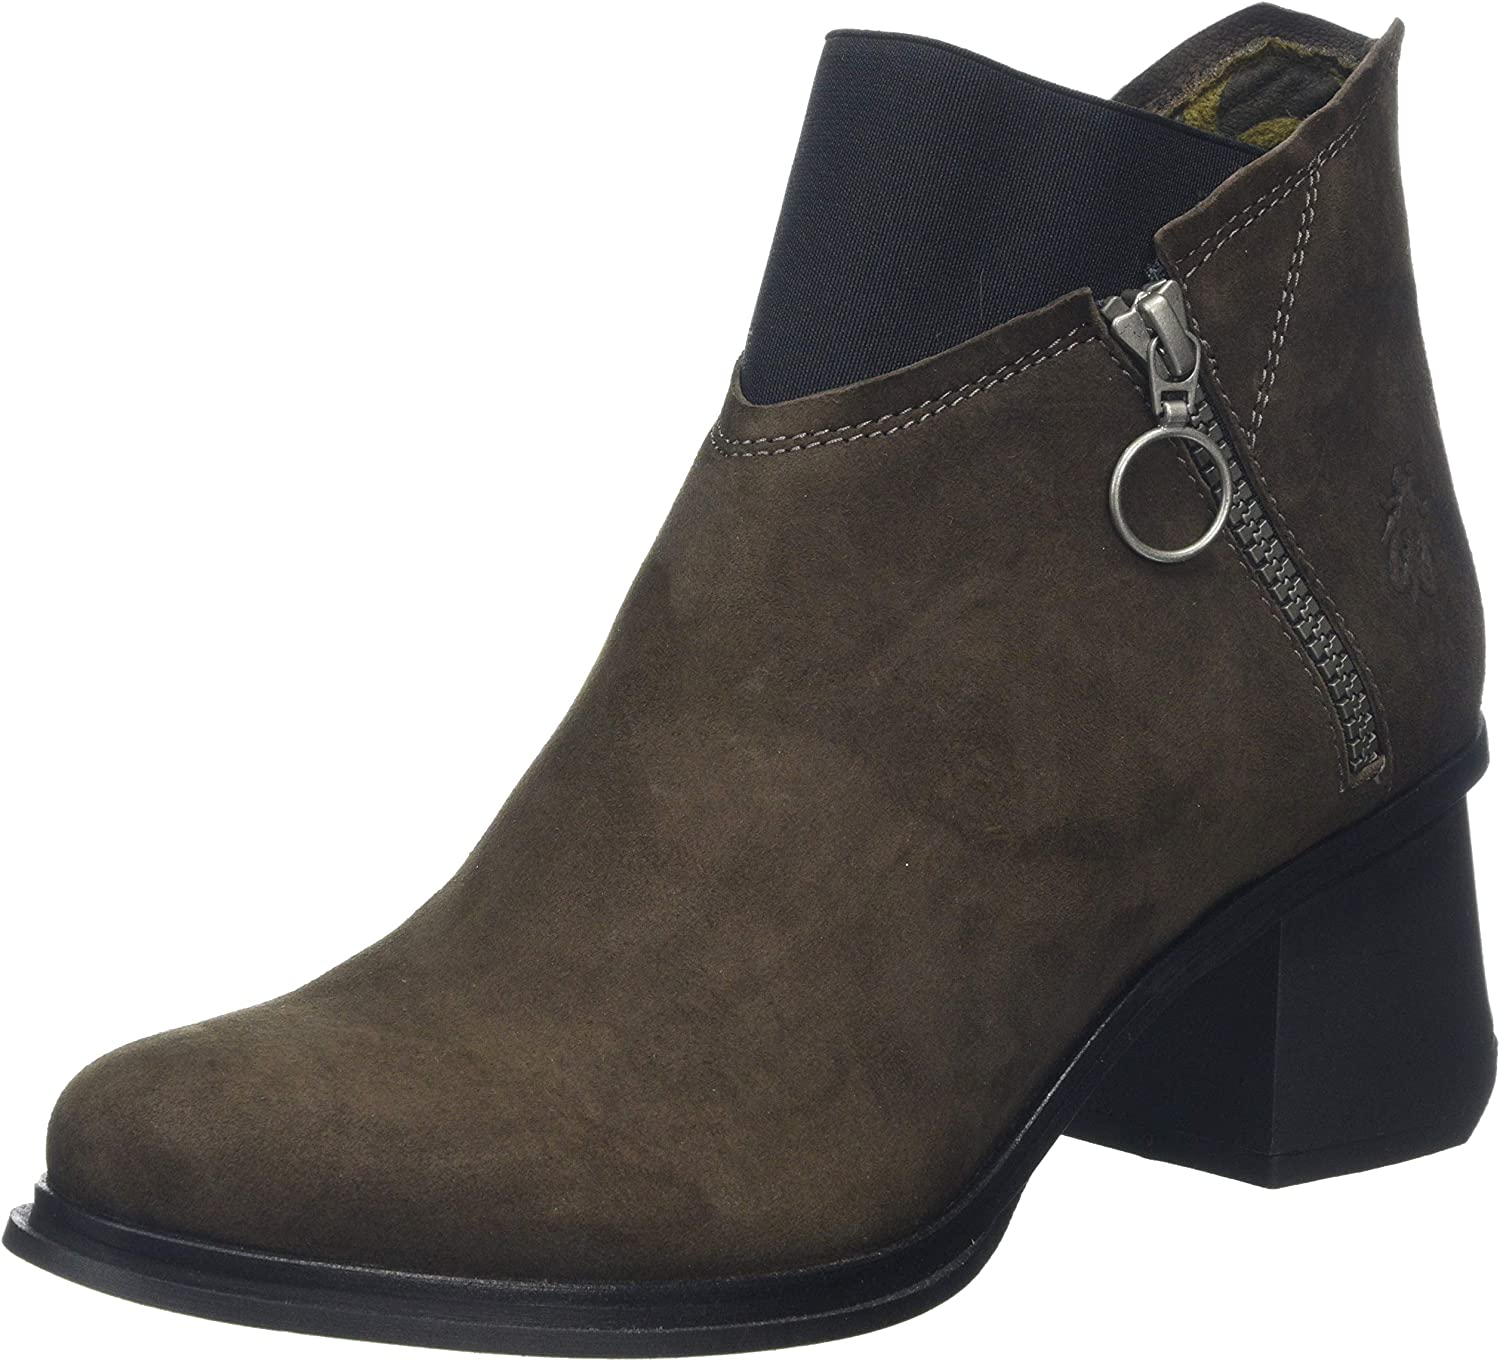 FLY London Women's 国産品 Boots Ankle 国際ブランド